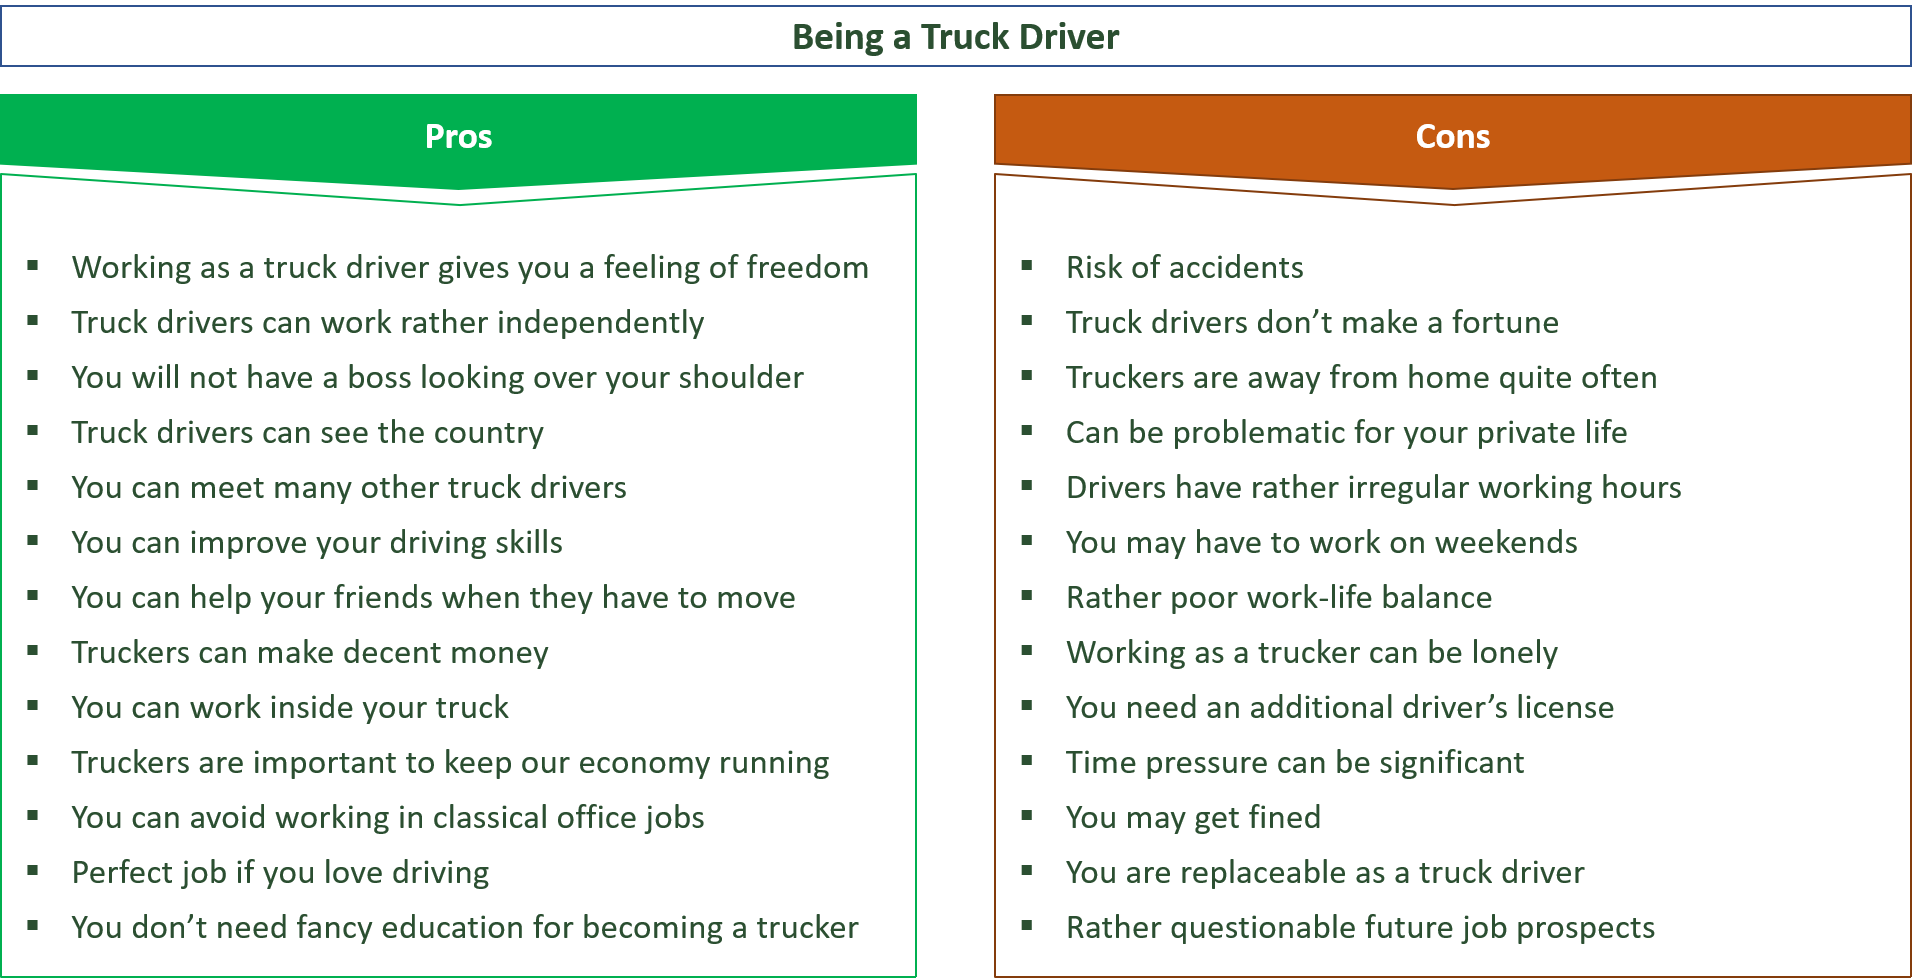 advantages and disadvantages of being a truck driver